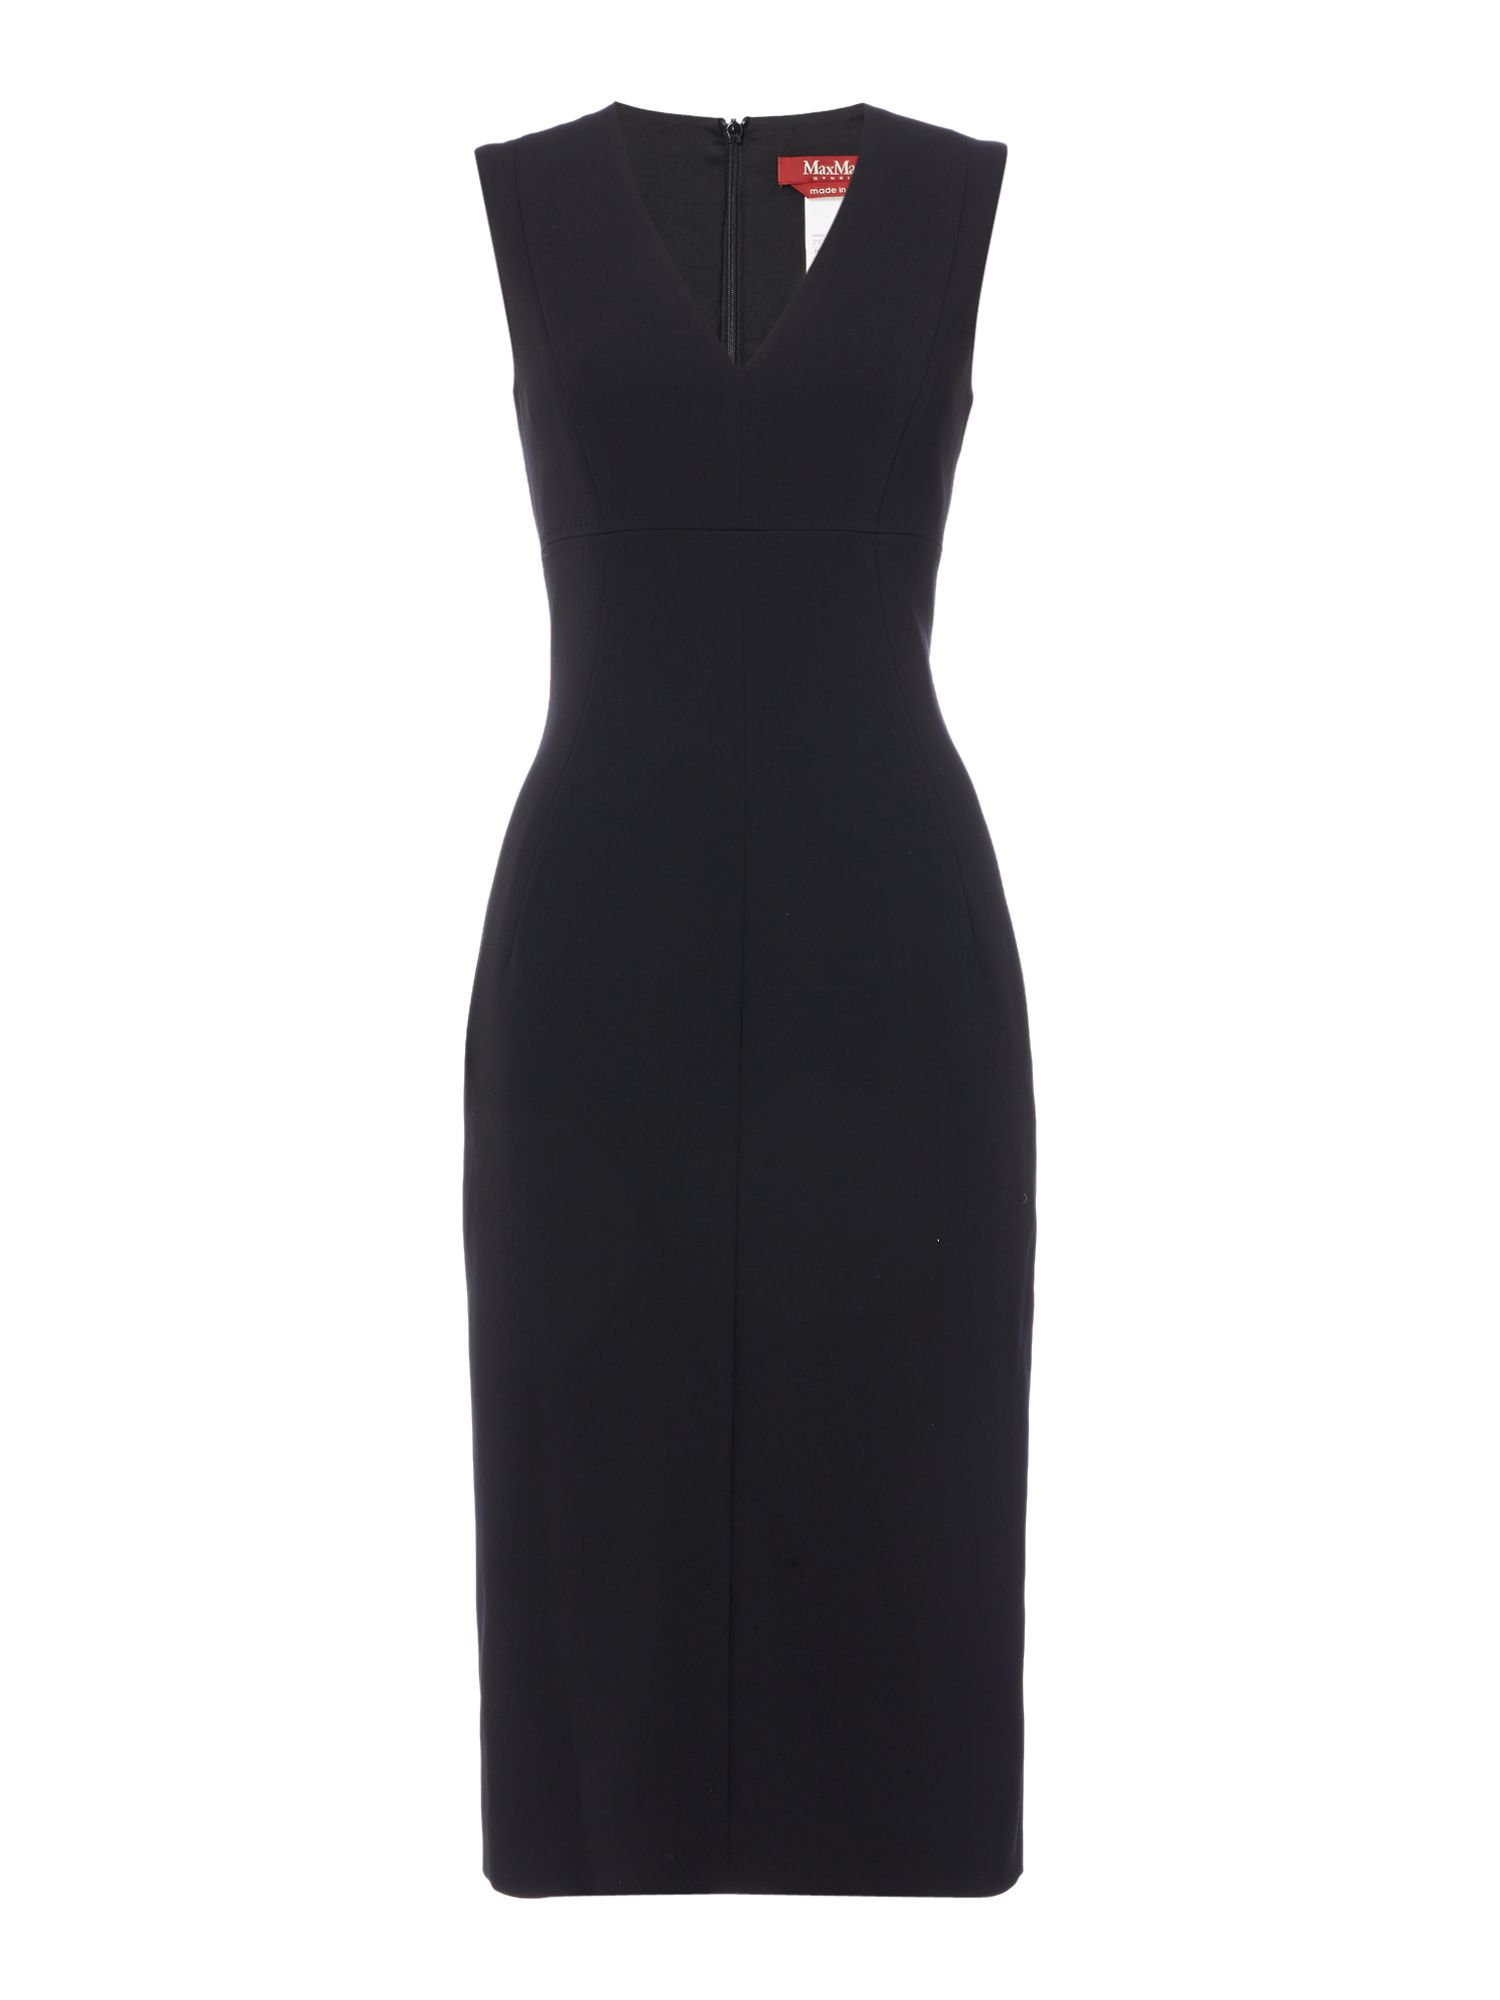 Max Mara Studio Legge sleeveless v neck shift dress, Black